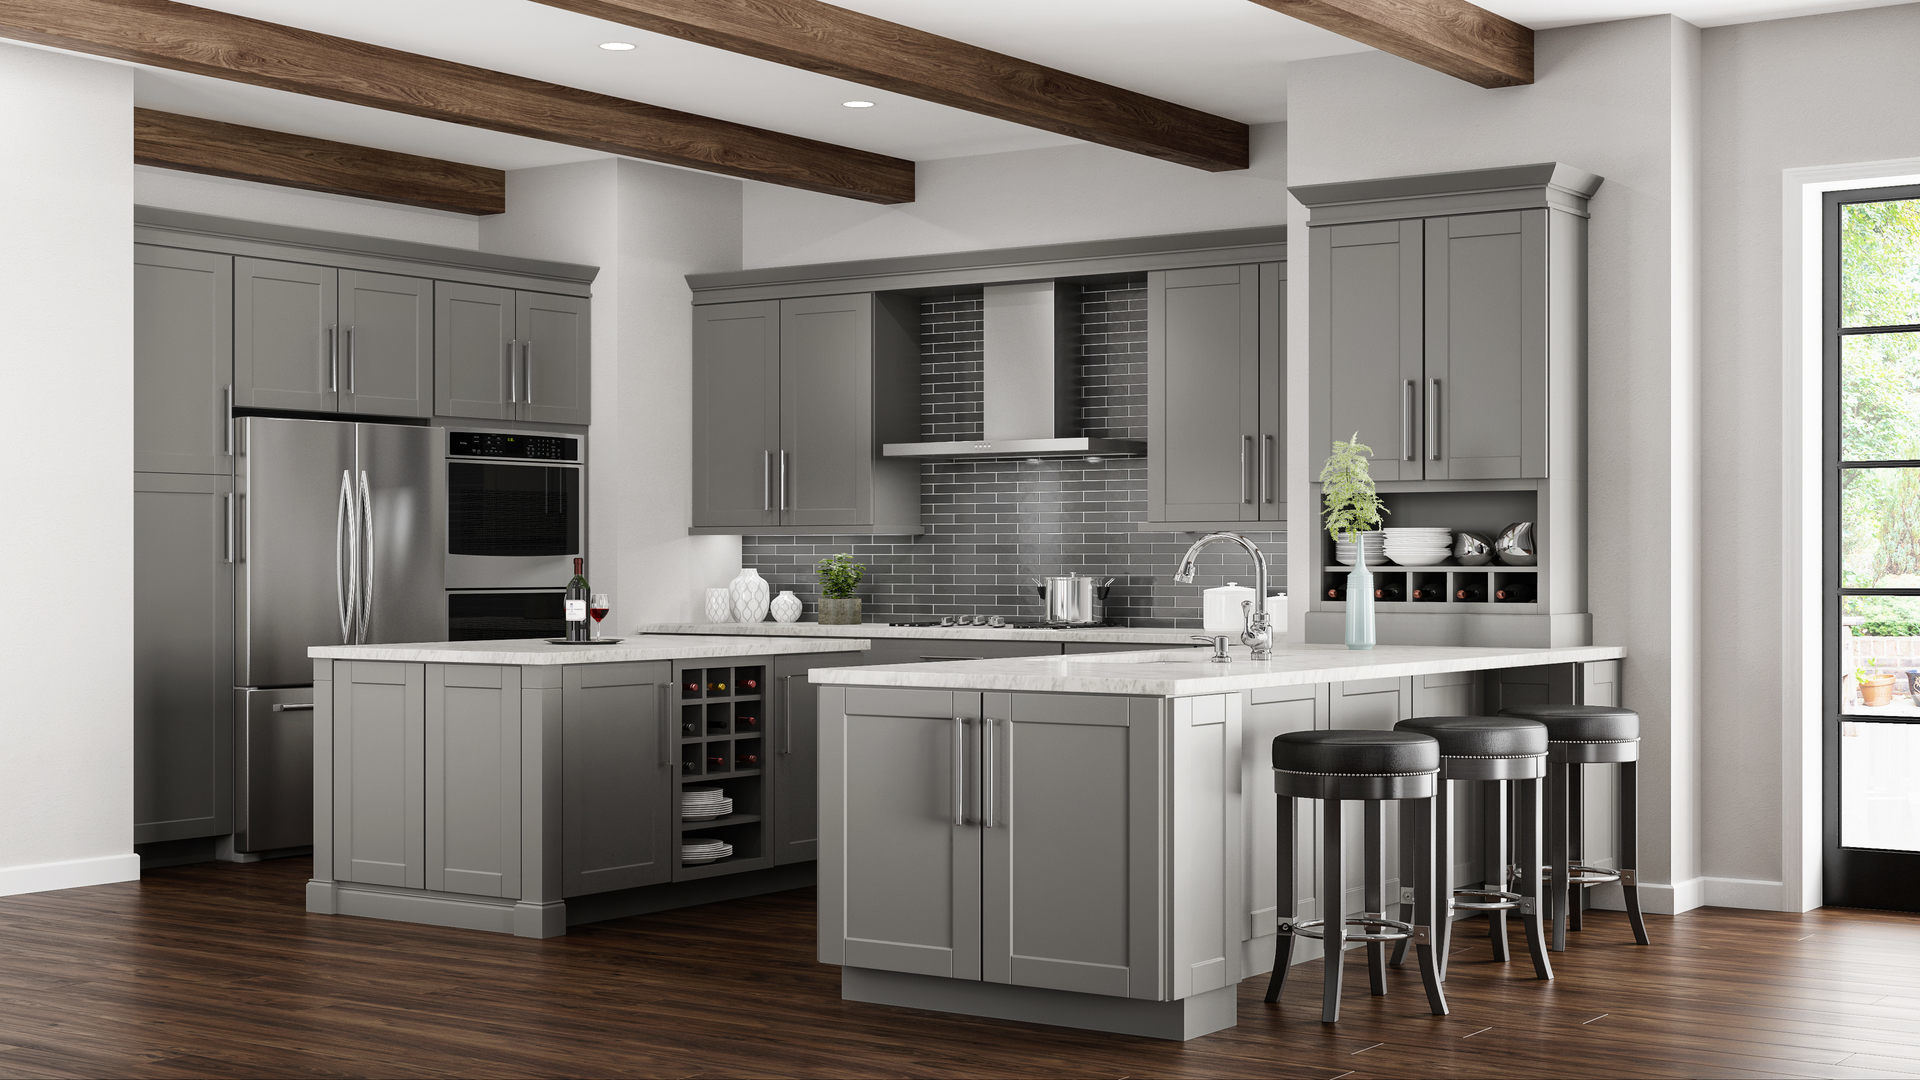 Hampton Bay Shaker Wall Cabinets In Dove Gray